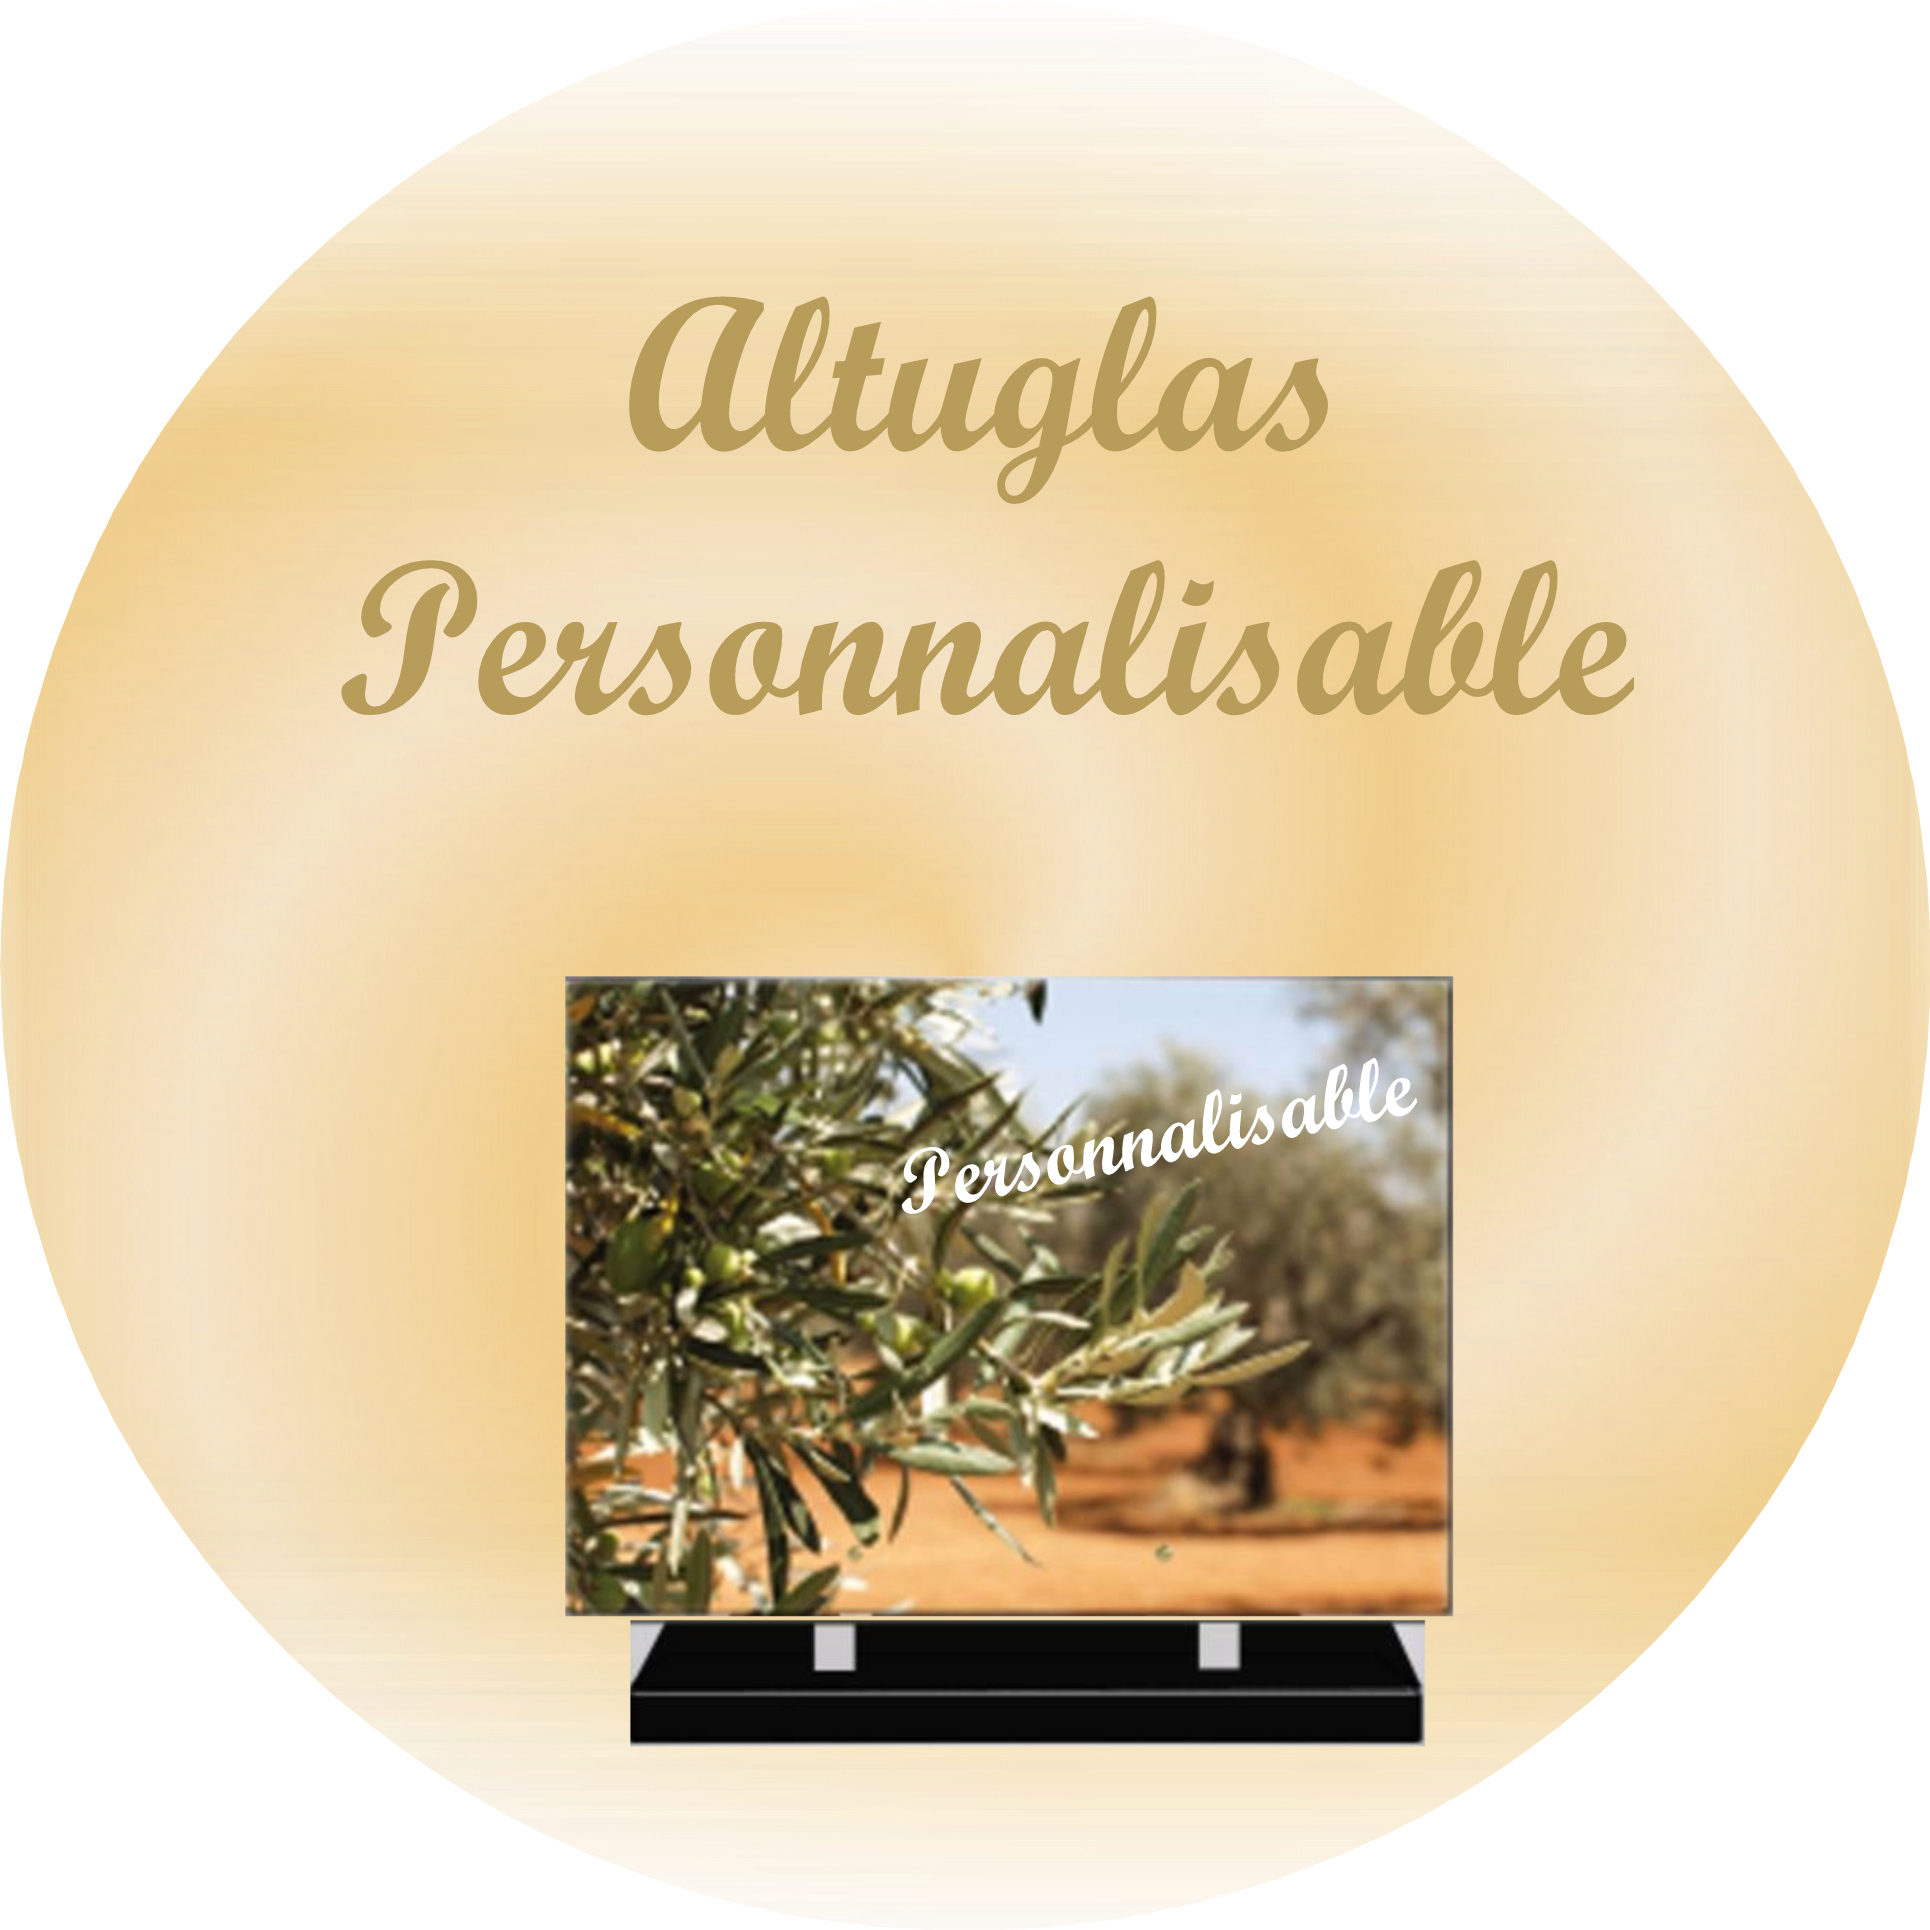 PLAQUES FUNERAIRES MODERNES PERSONNALISABLES RECTANGLE IZENAVE